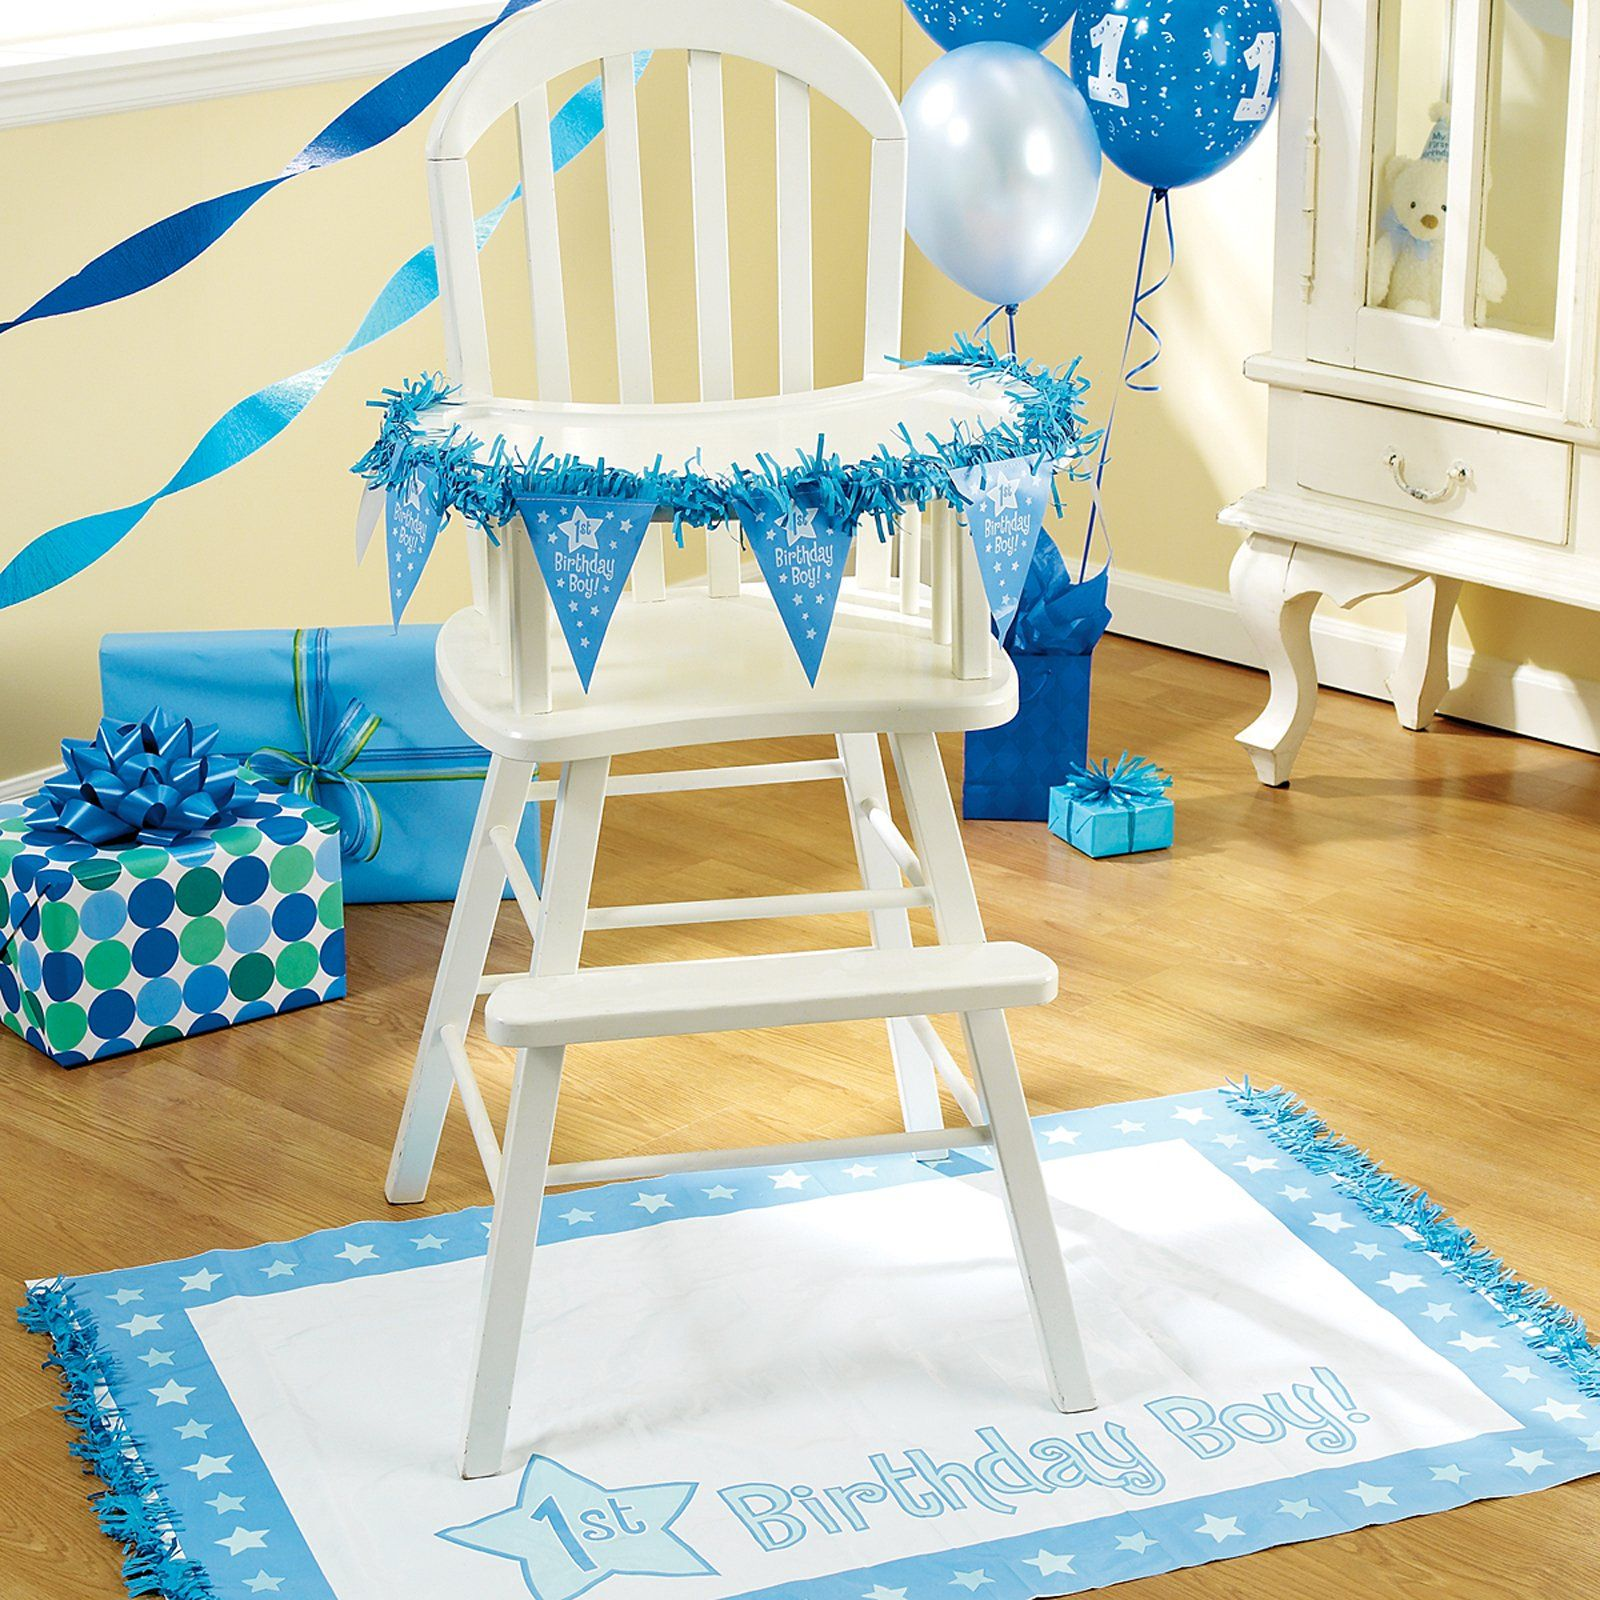 One Special Boy 1st Birthday High Chair Decorating Kit From BirthdayExpress